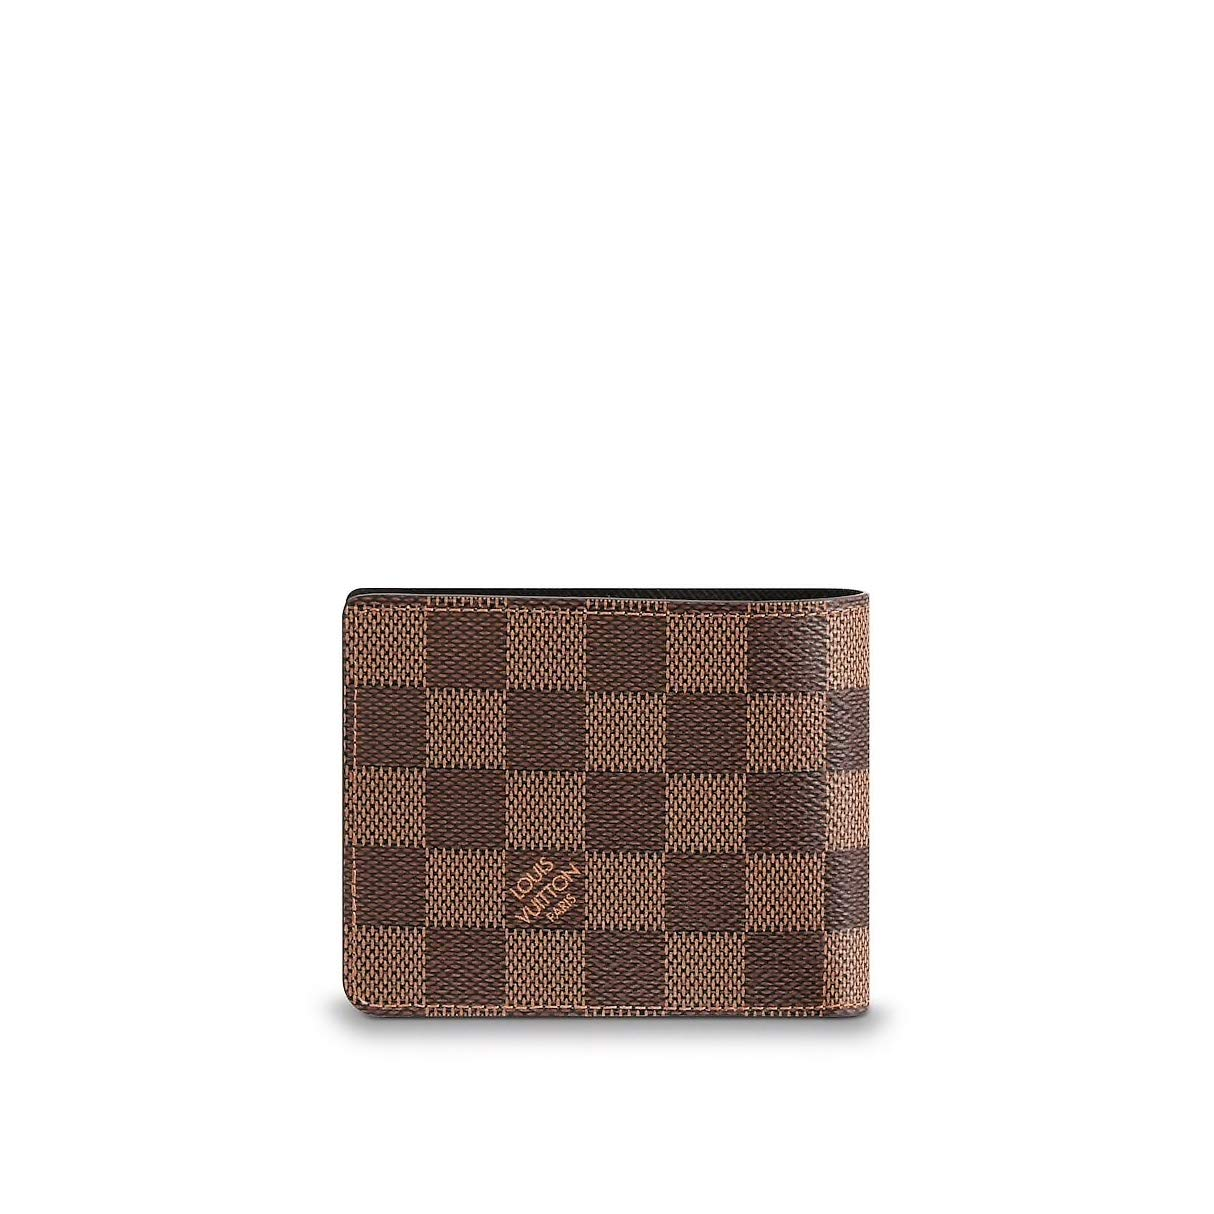 8dbd19fffcc4 Amazon.com  Louis Vuitton Damier Slender Wallet Article  N61208 Made in  France  Sports   Outdoors